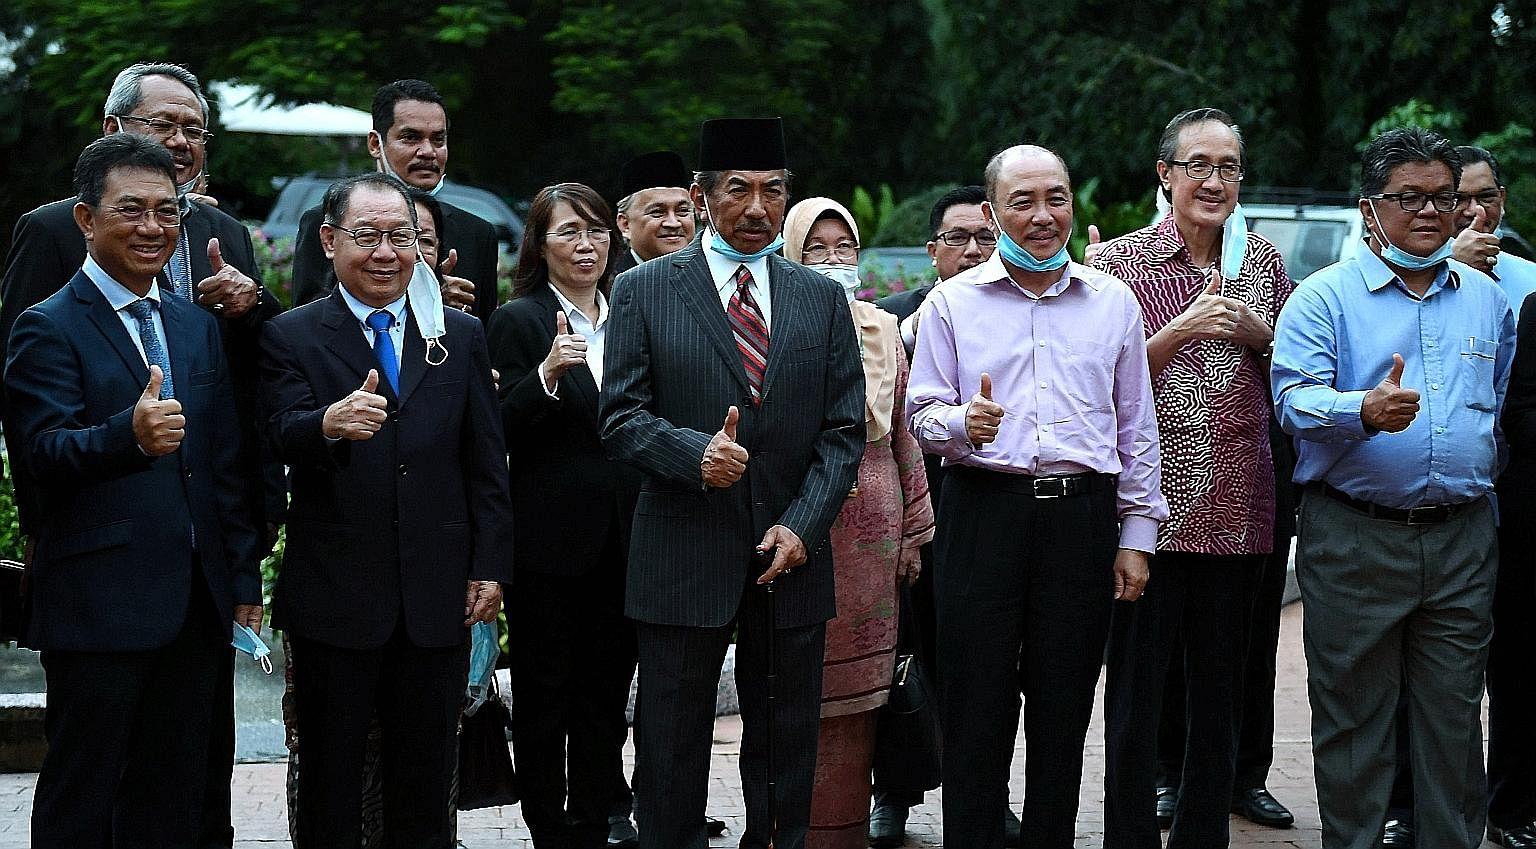 Former Sabah chief minister Musa Aman (centre) with other state assemblymen on the grounds of his house after a media conference on Wednesday. The state polls will represent the first major political battle between the five-month-old Perikatan Nasion